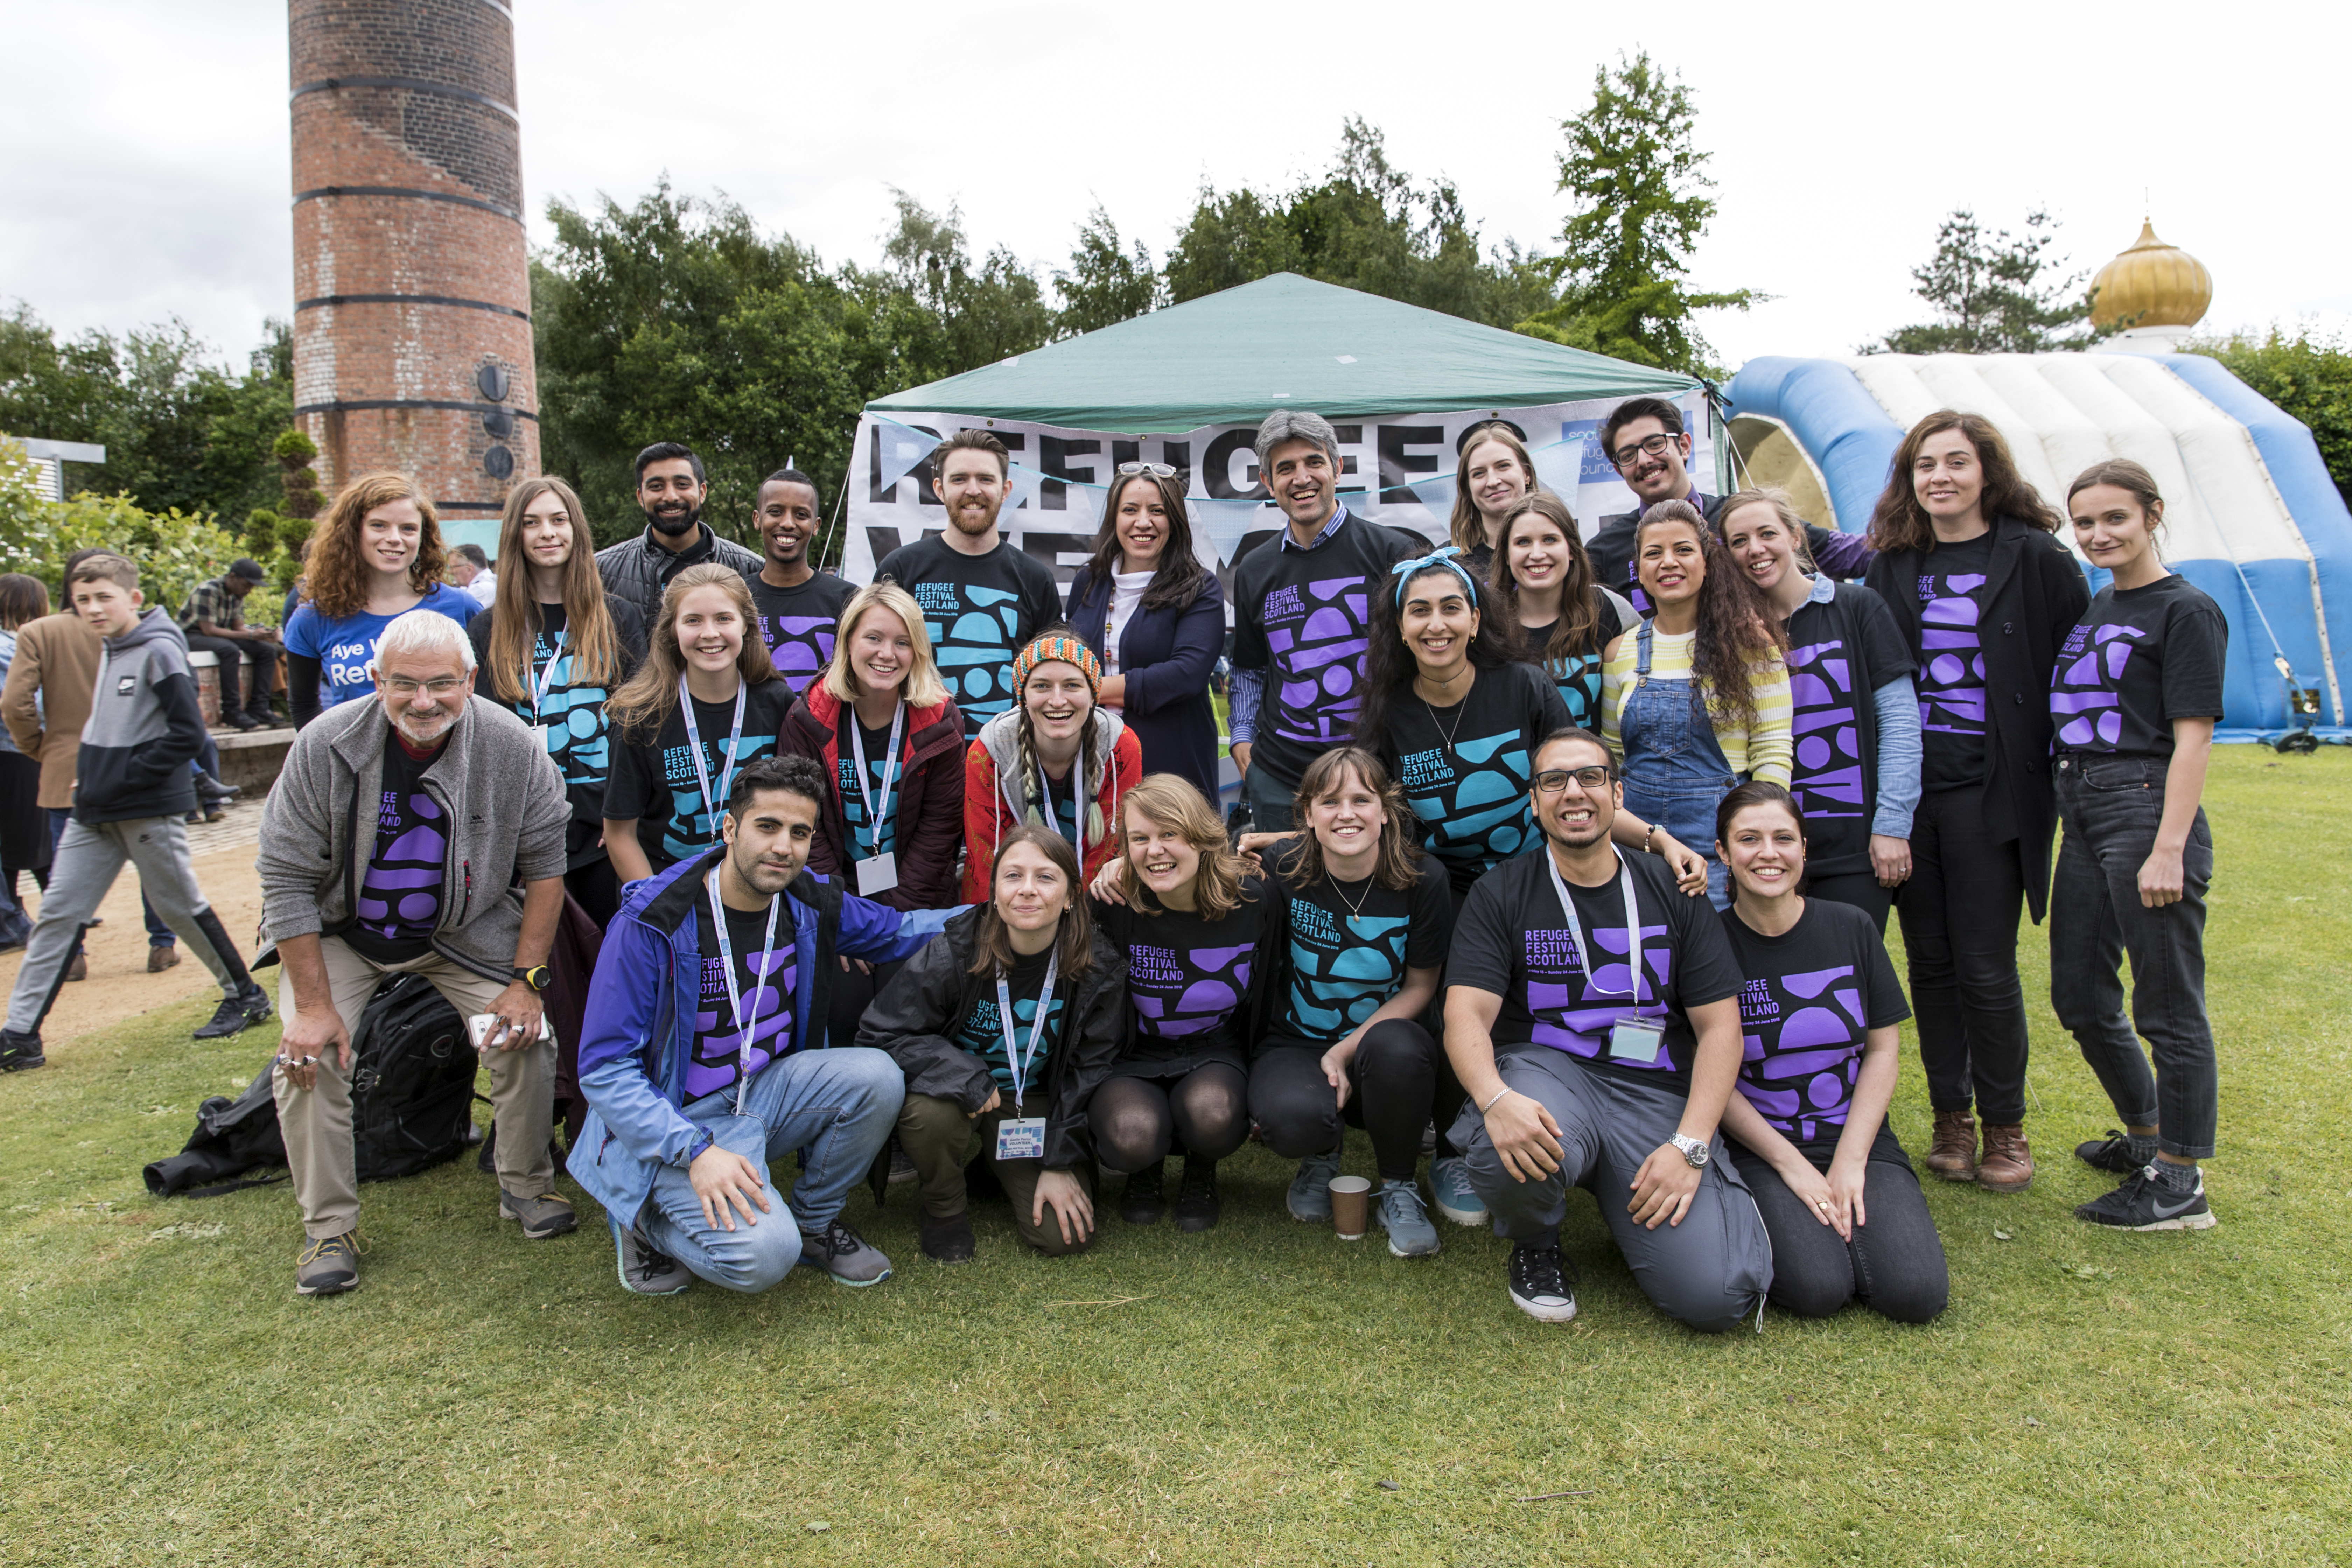 How can I help out at Refugee Festival Scotland 2019?